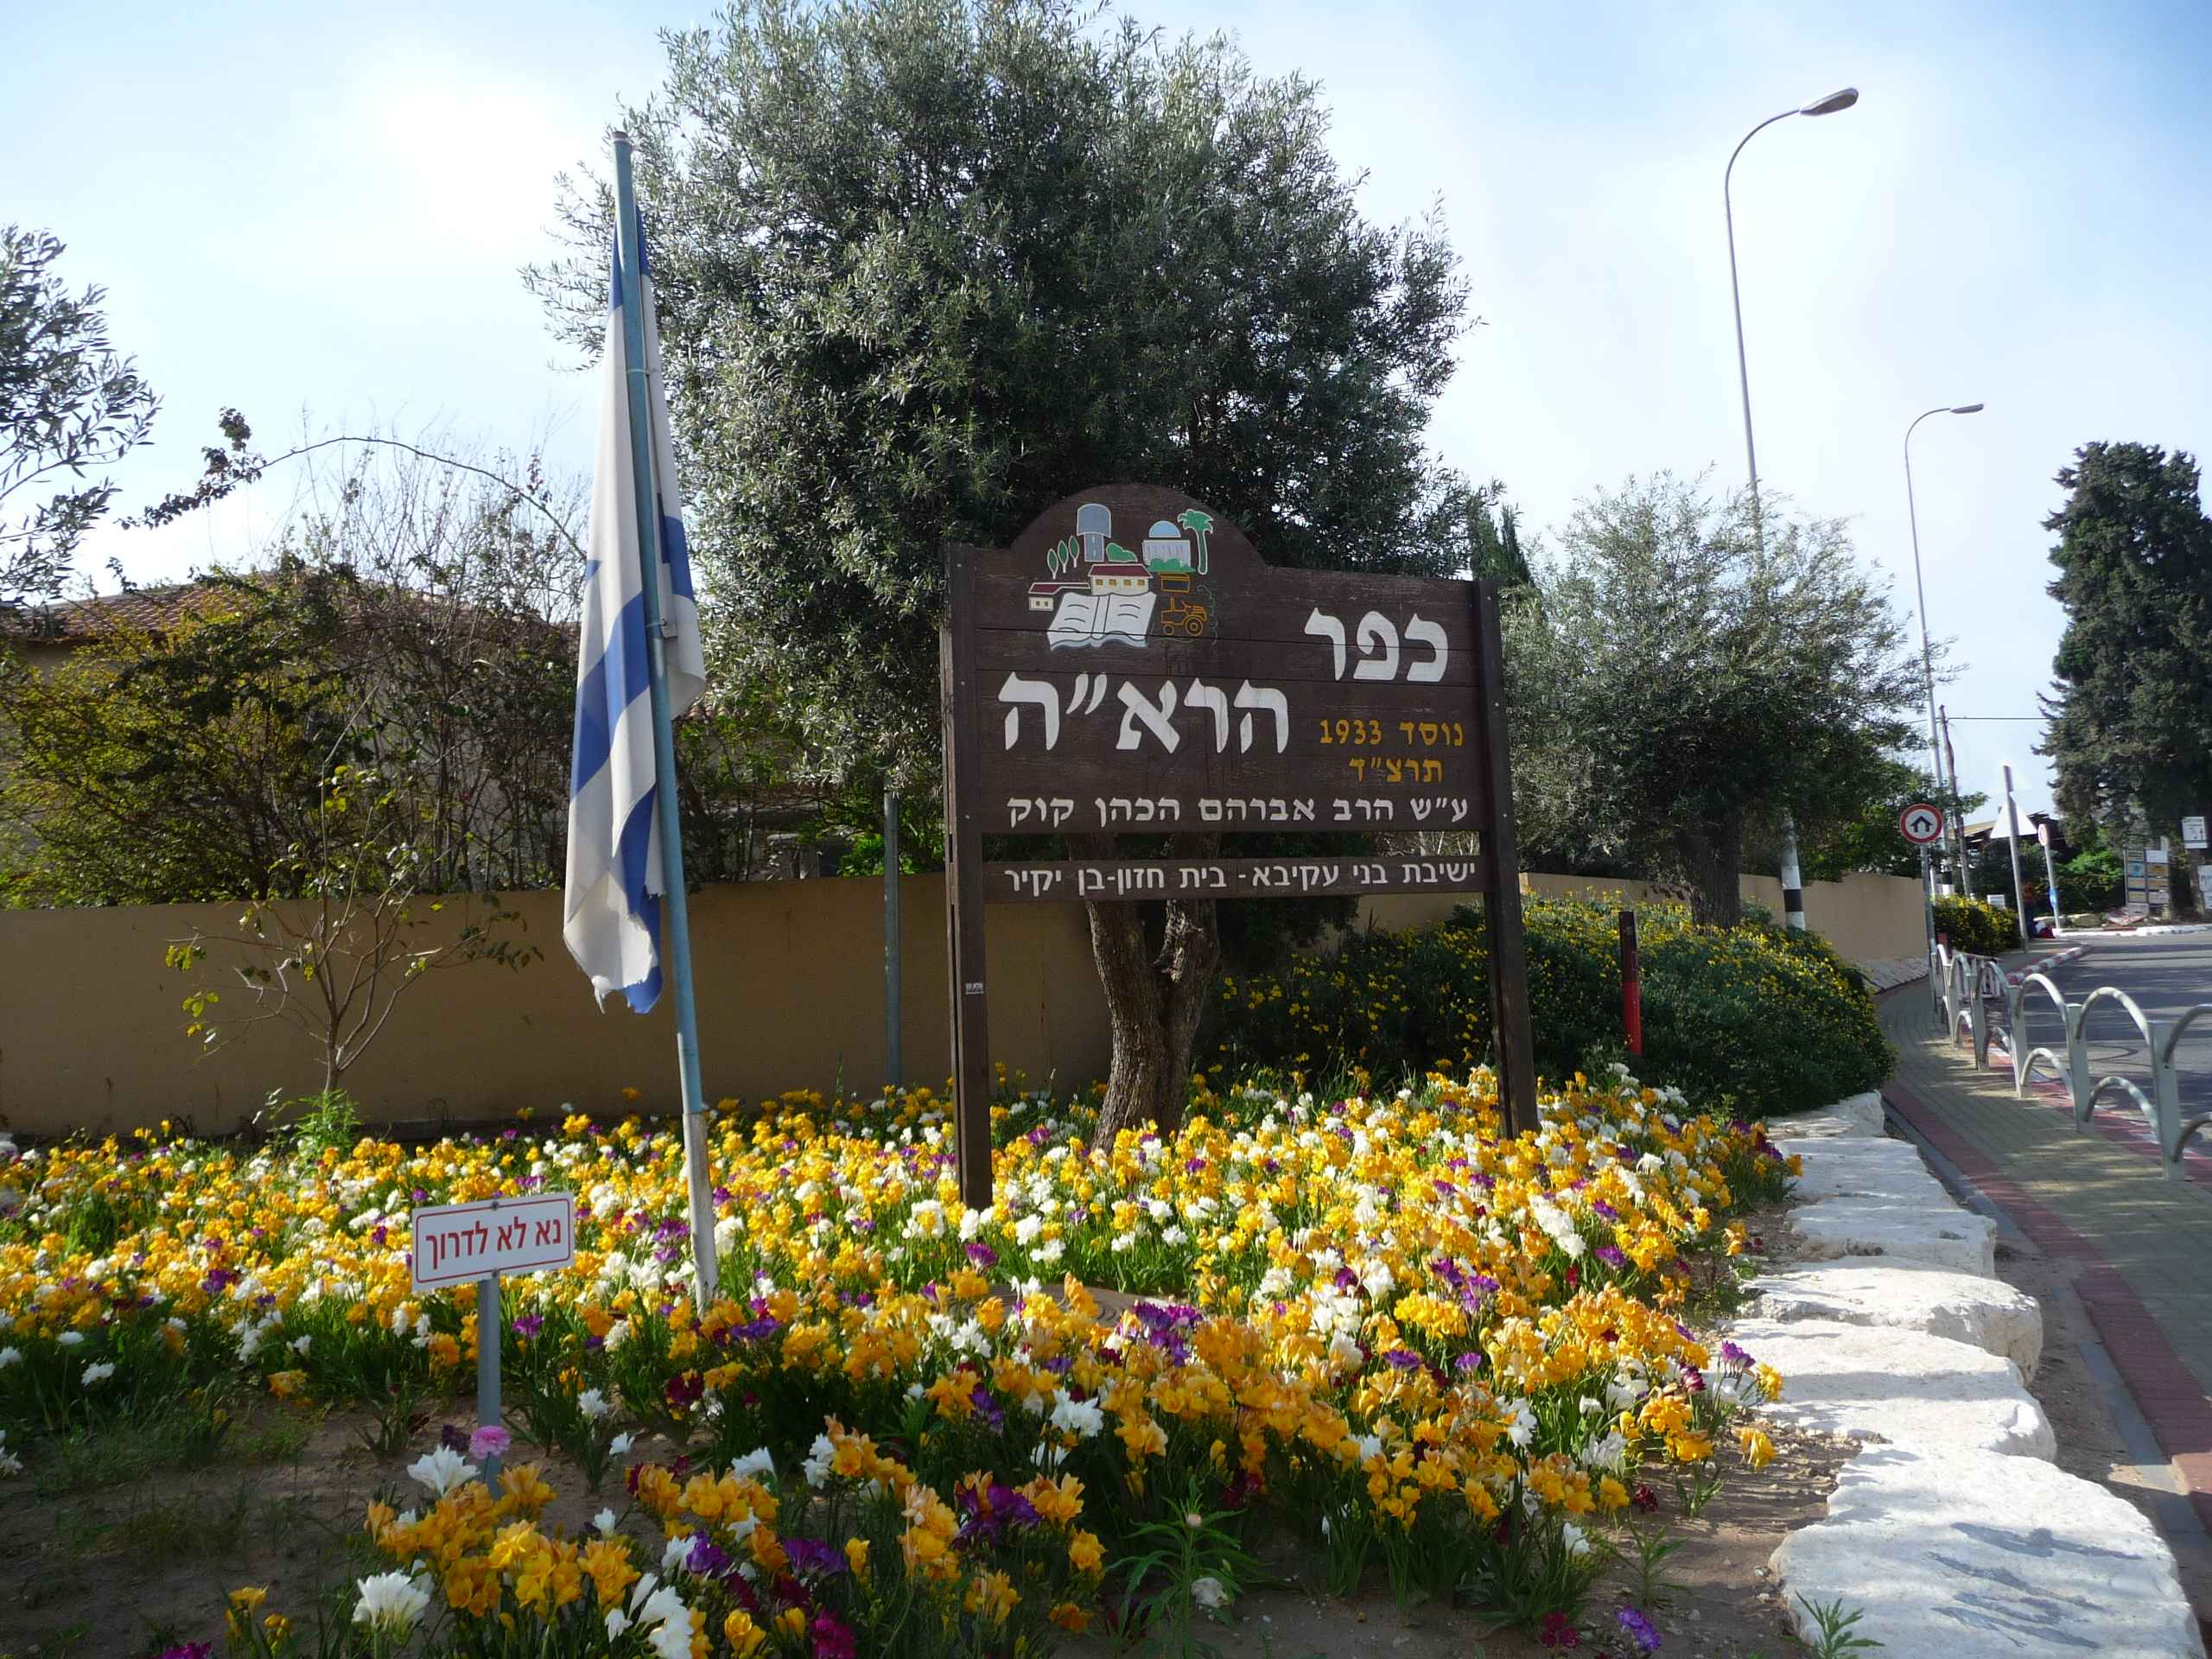 Full Day Tour to Kfar HaRoeh (including lunch)